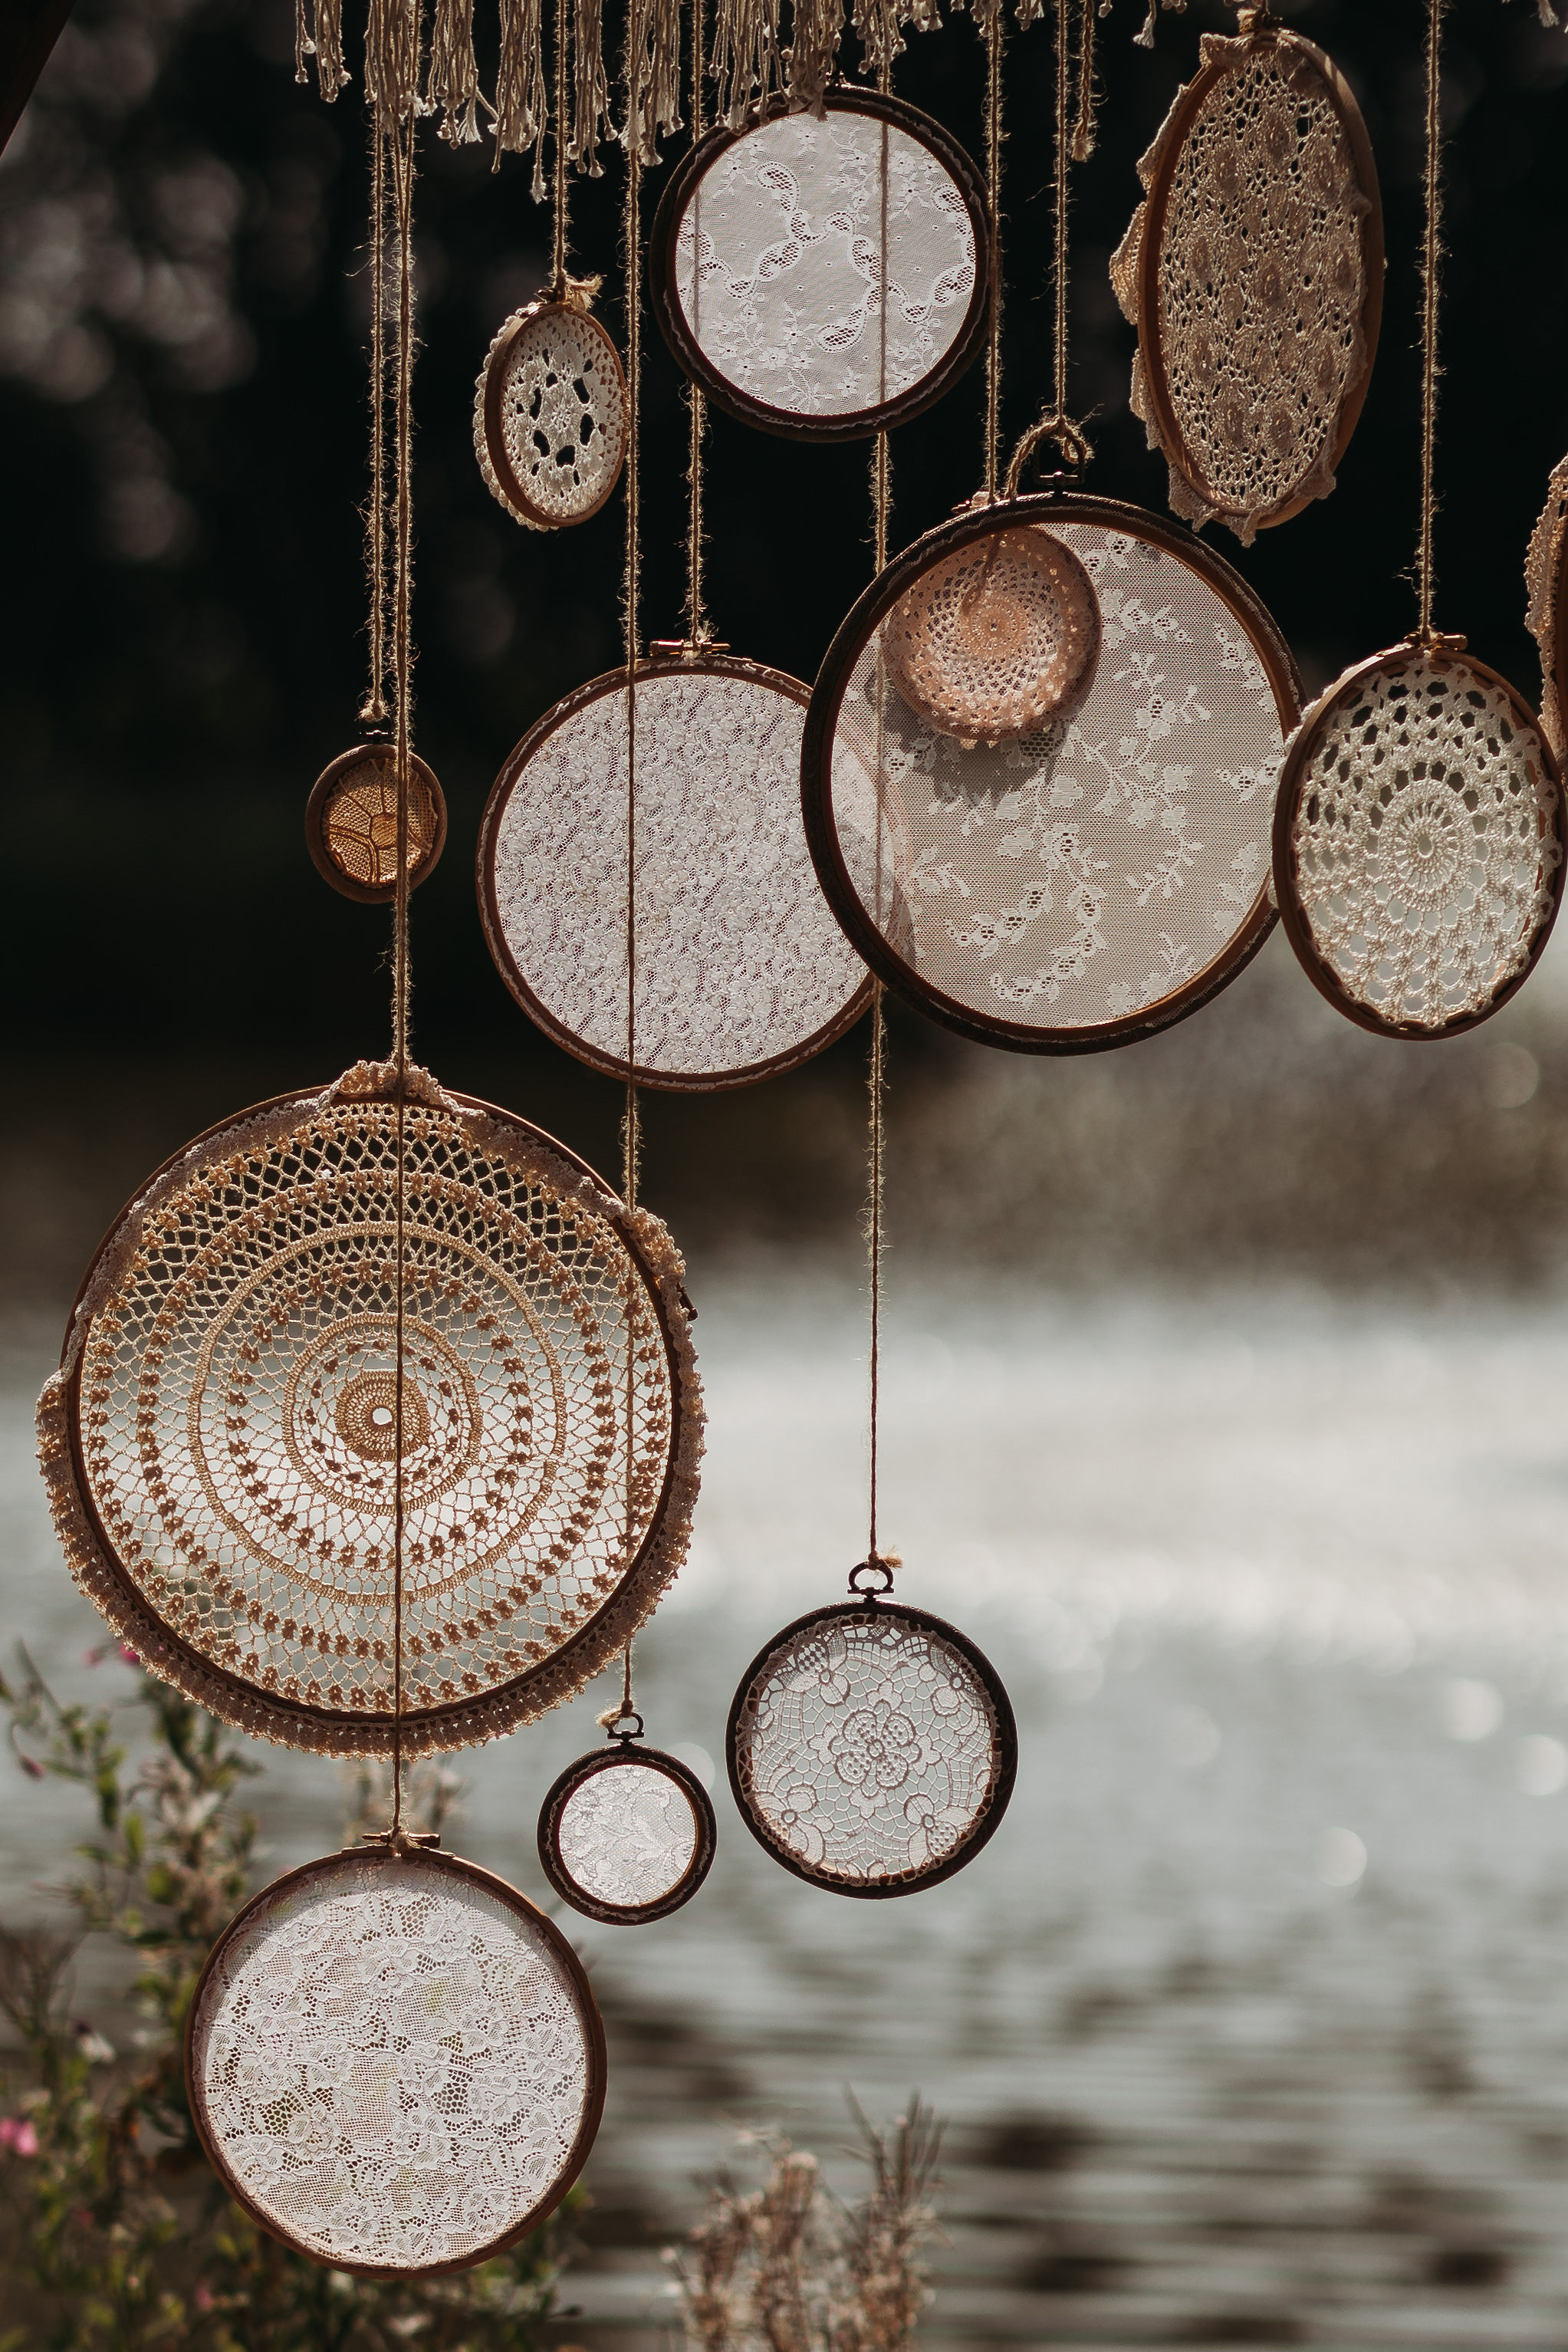 Wedding dreamcatchers